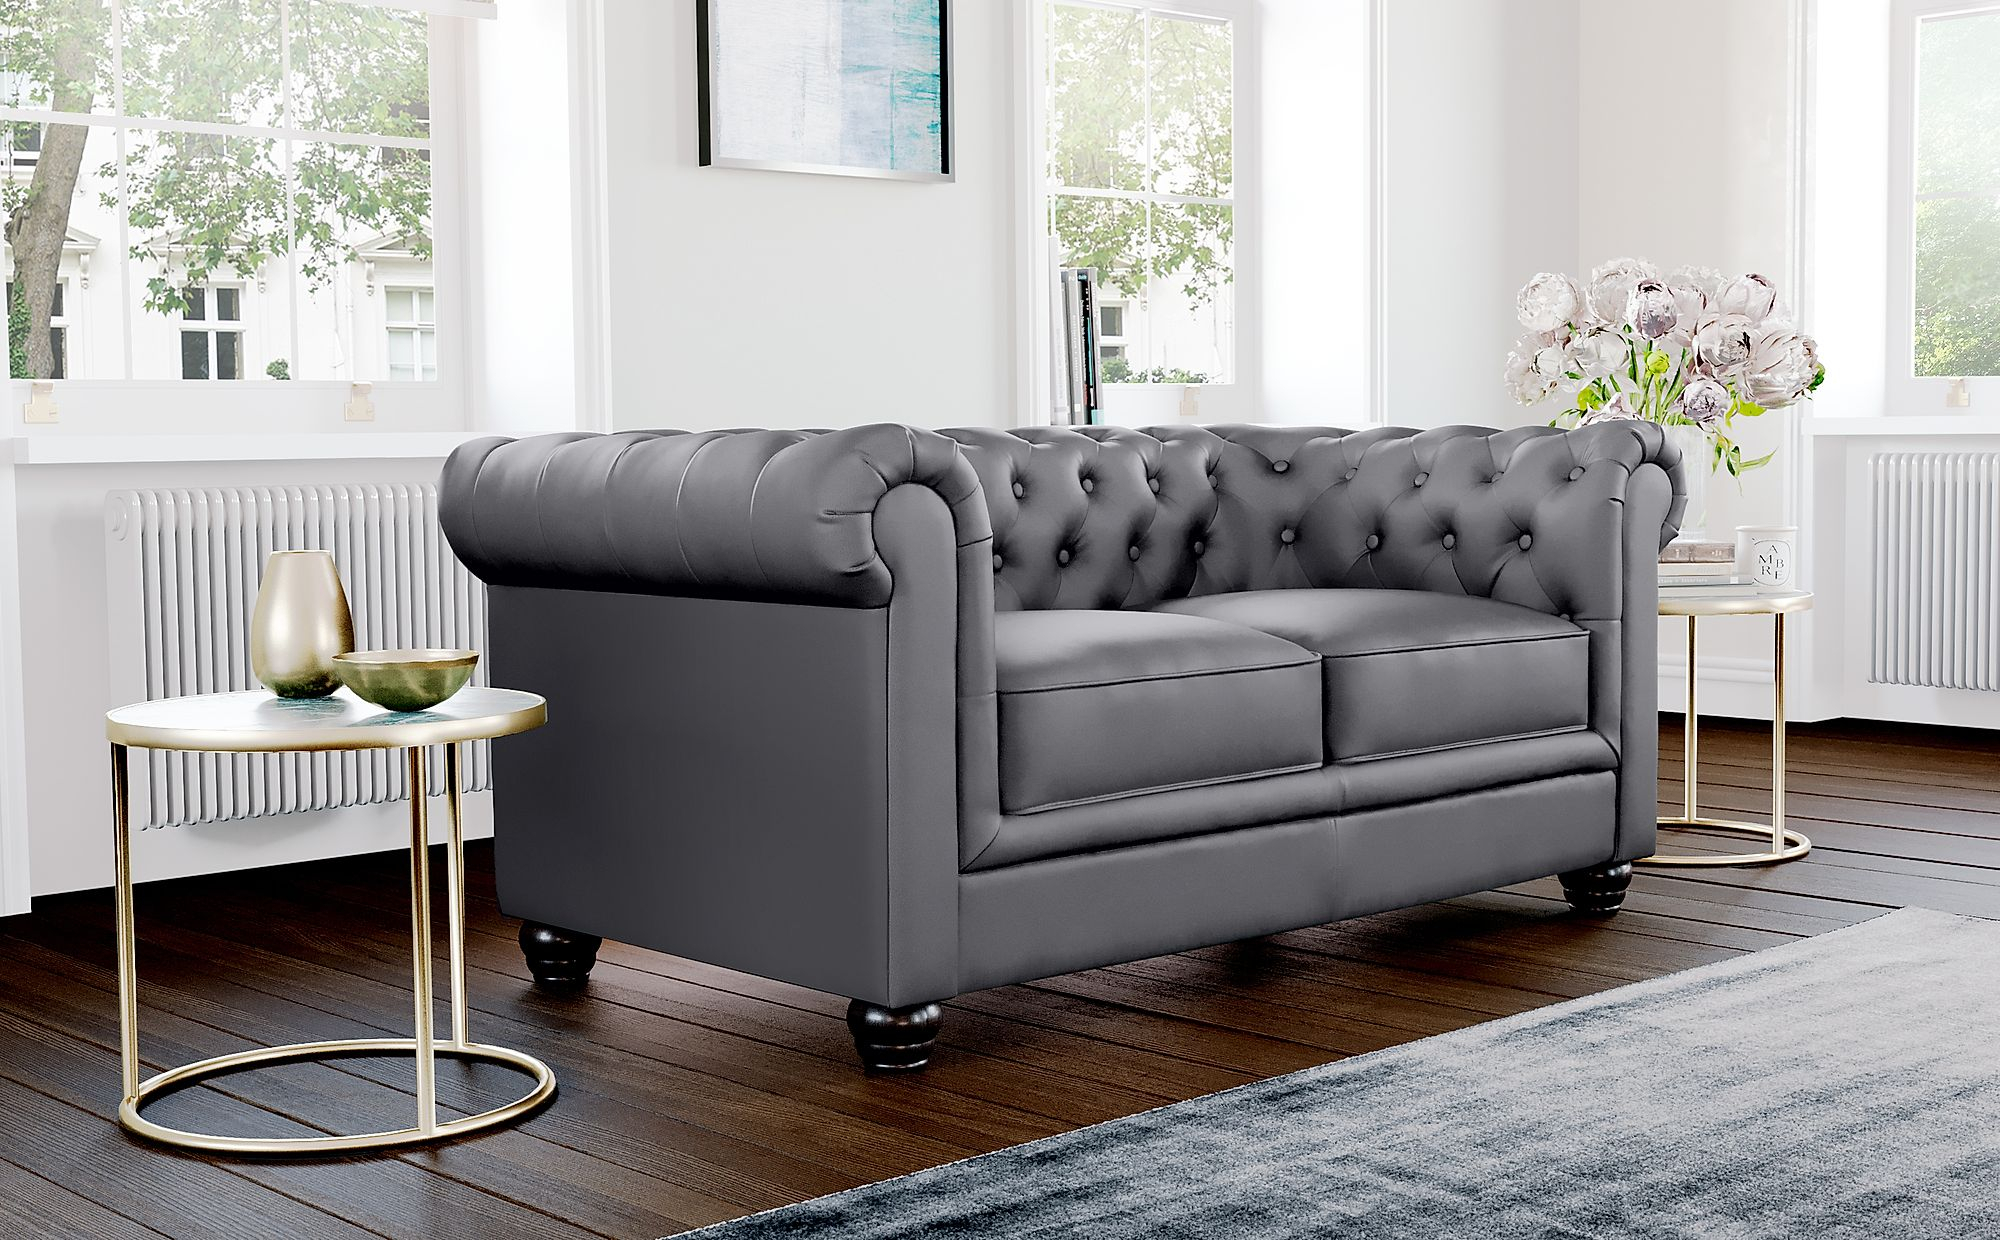 Hampton Grey Leather 2 Seater Chesterfield Sofa With Chesterfield Sofas And Chairs (View 1 of 15)